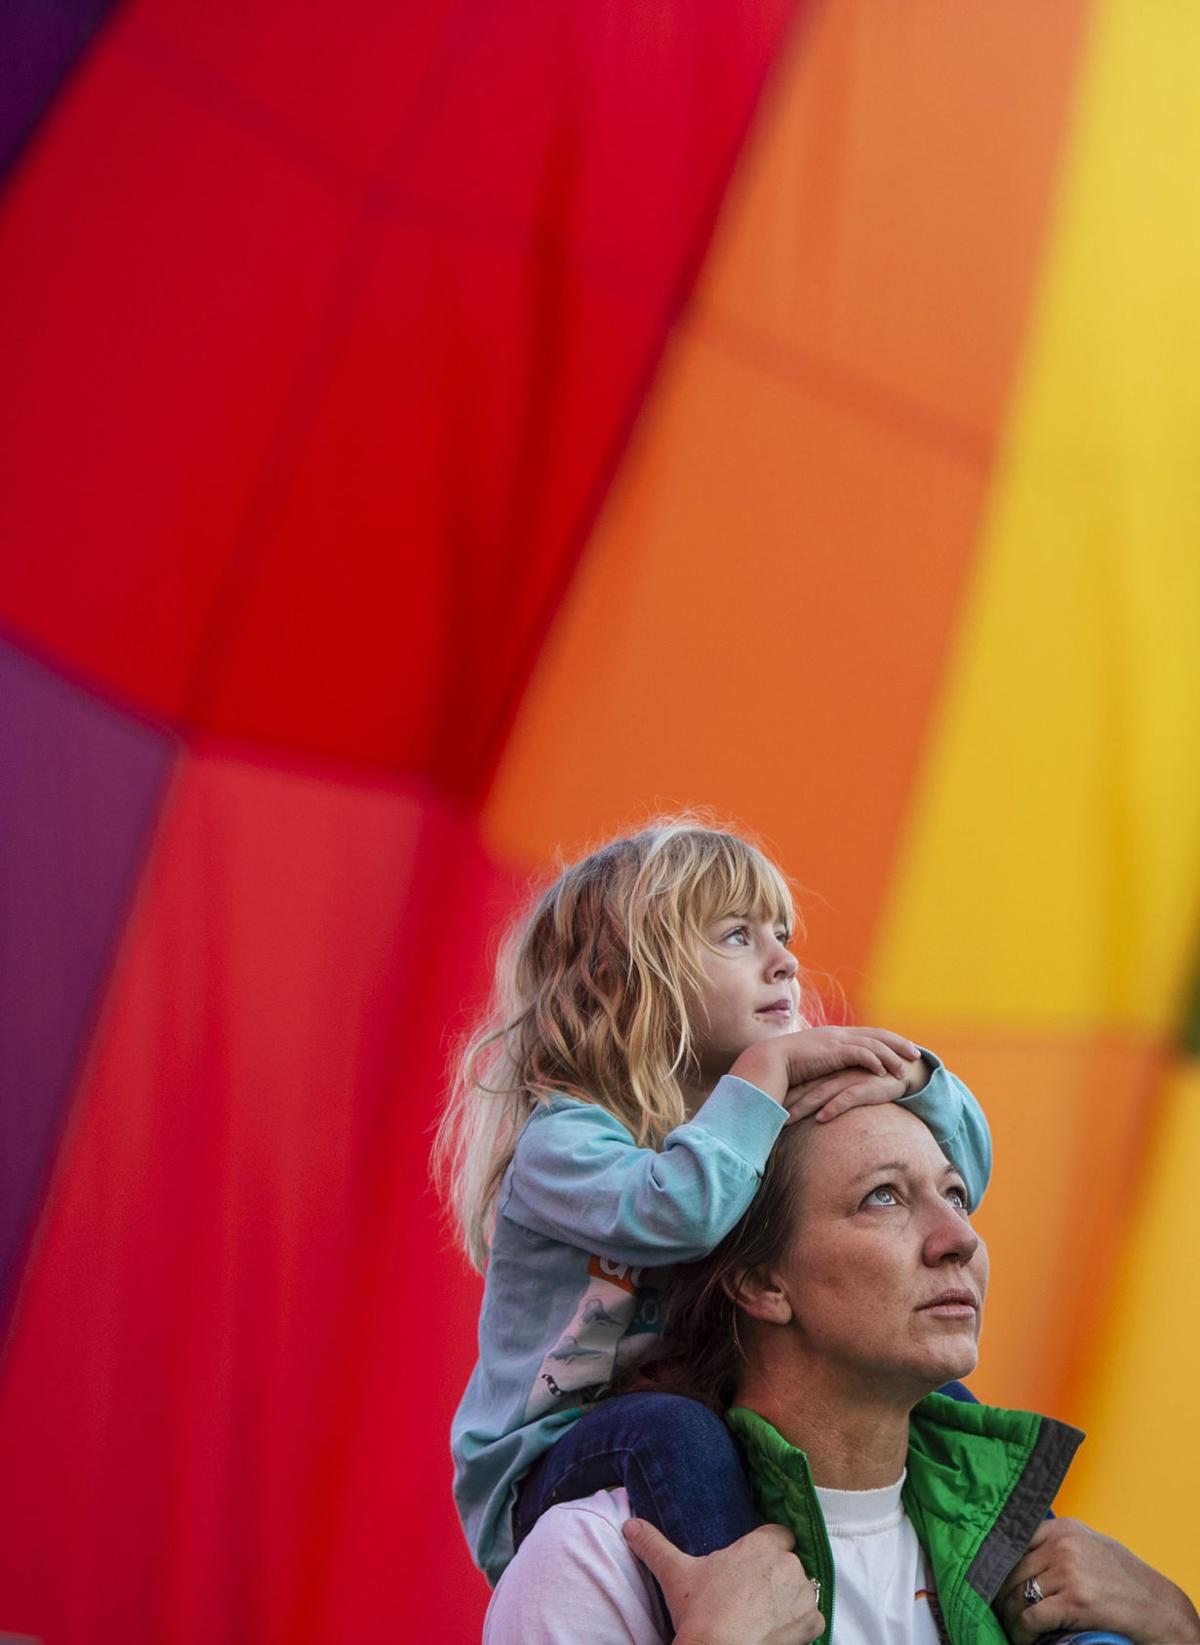 Up, up and away: Hot air balloons pepper Colorado Springs skyline for Labor Day weekend liftoff event